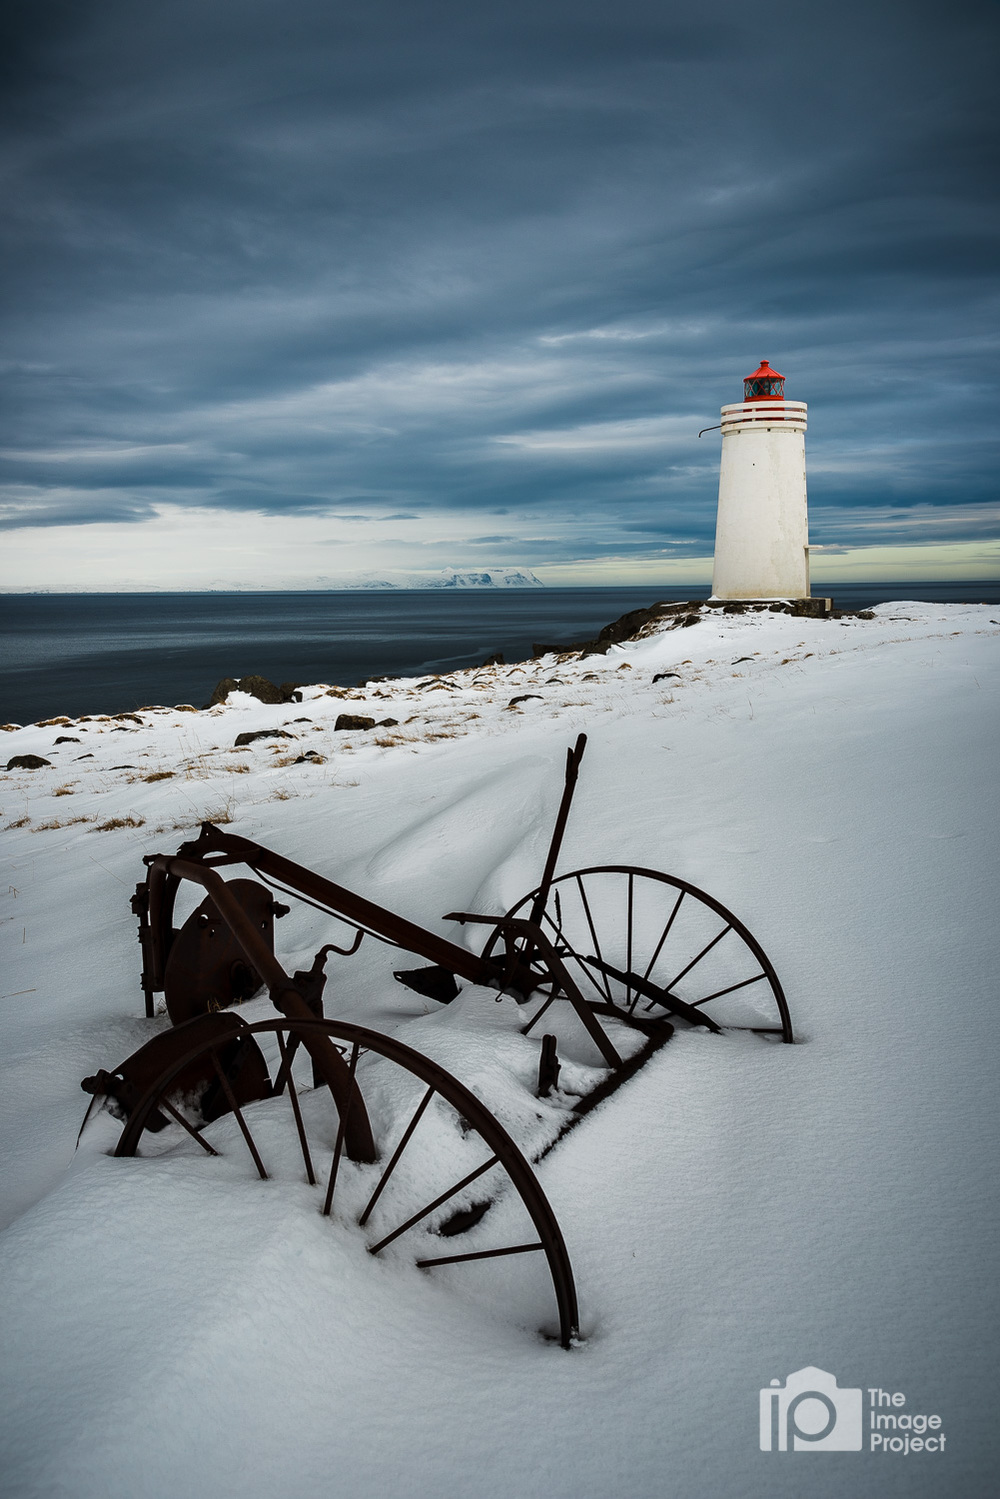 lighthouse and plough in the snow north iceland by nathan barry the image project in winter